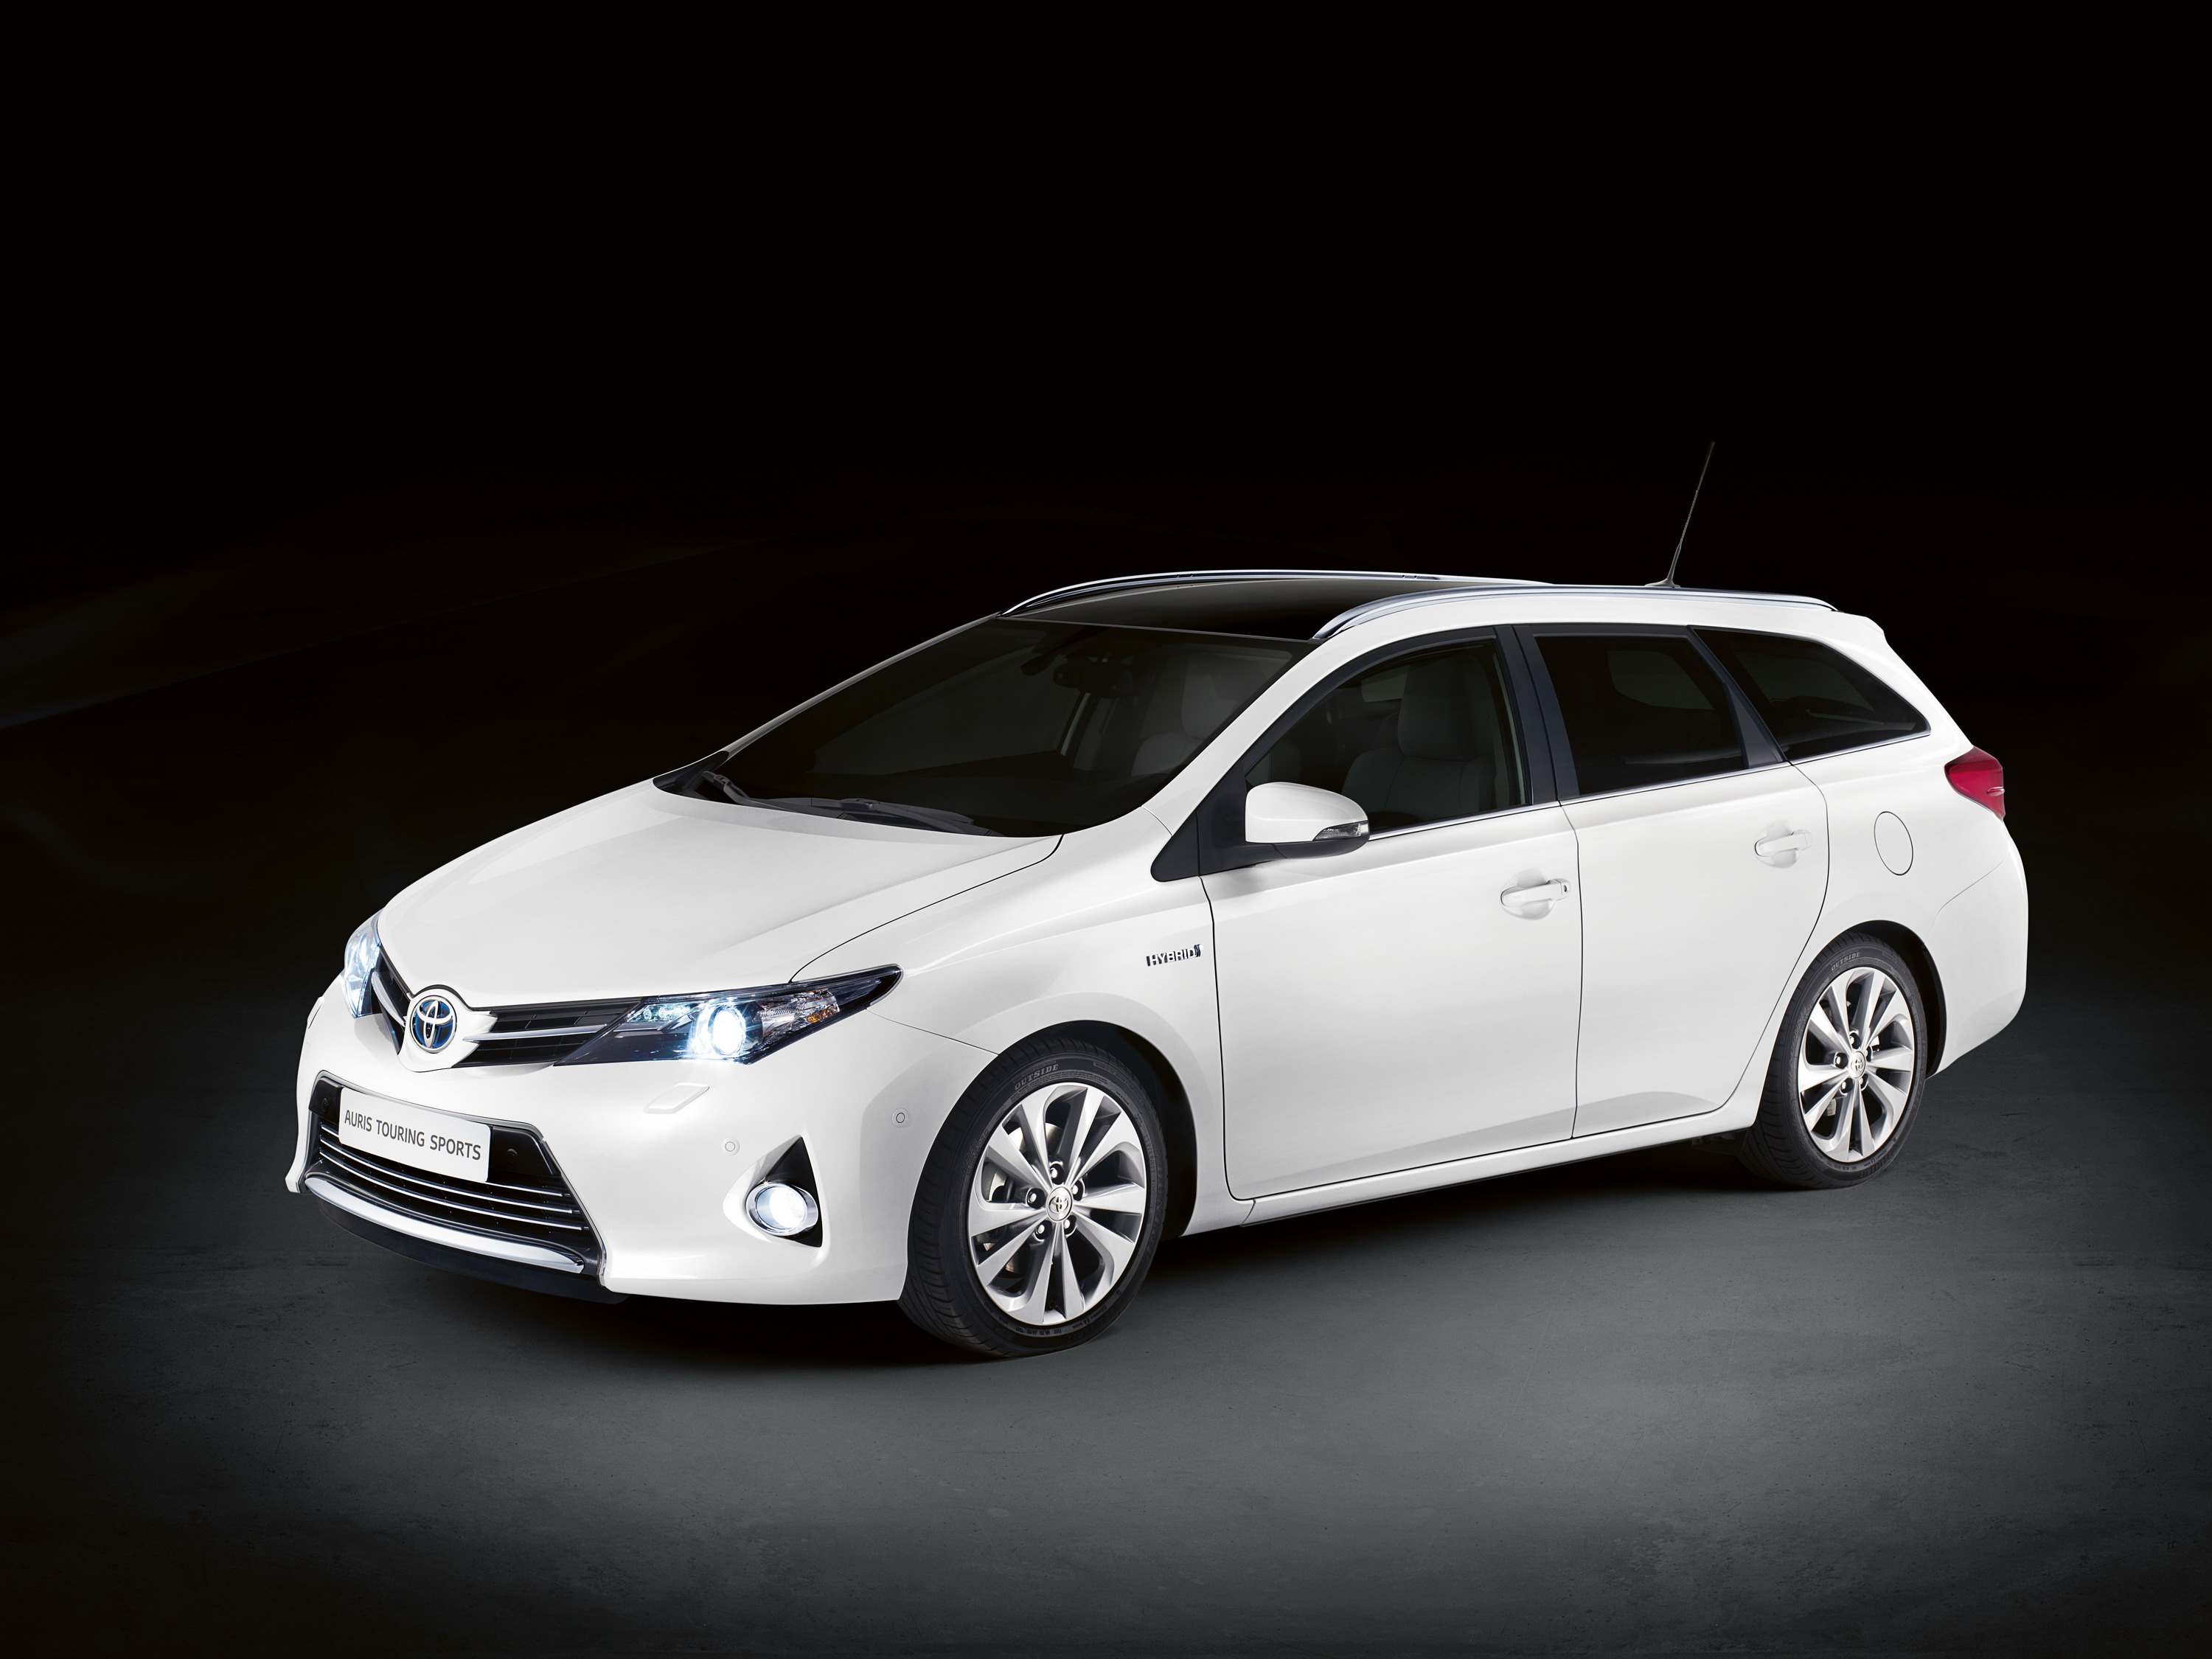 Toyota Corolla Touring Sports modern big